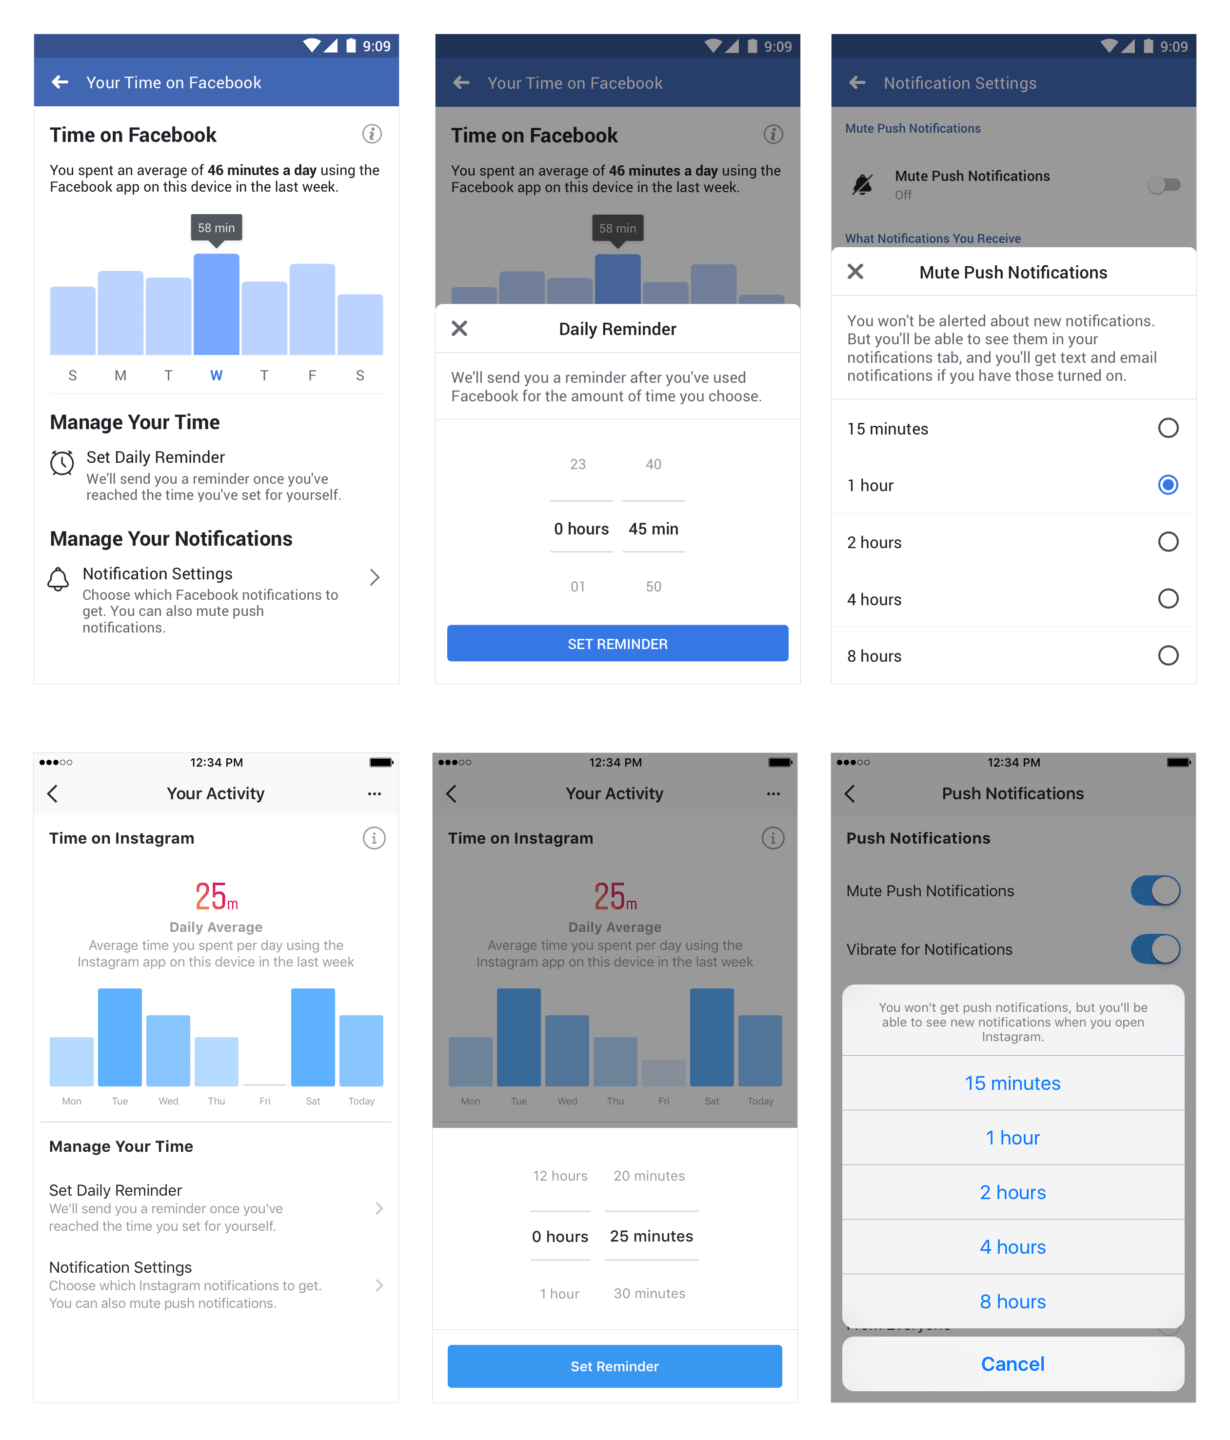 Facebook & Instagram announce new tools to manage time spent on them